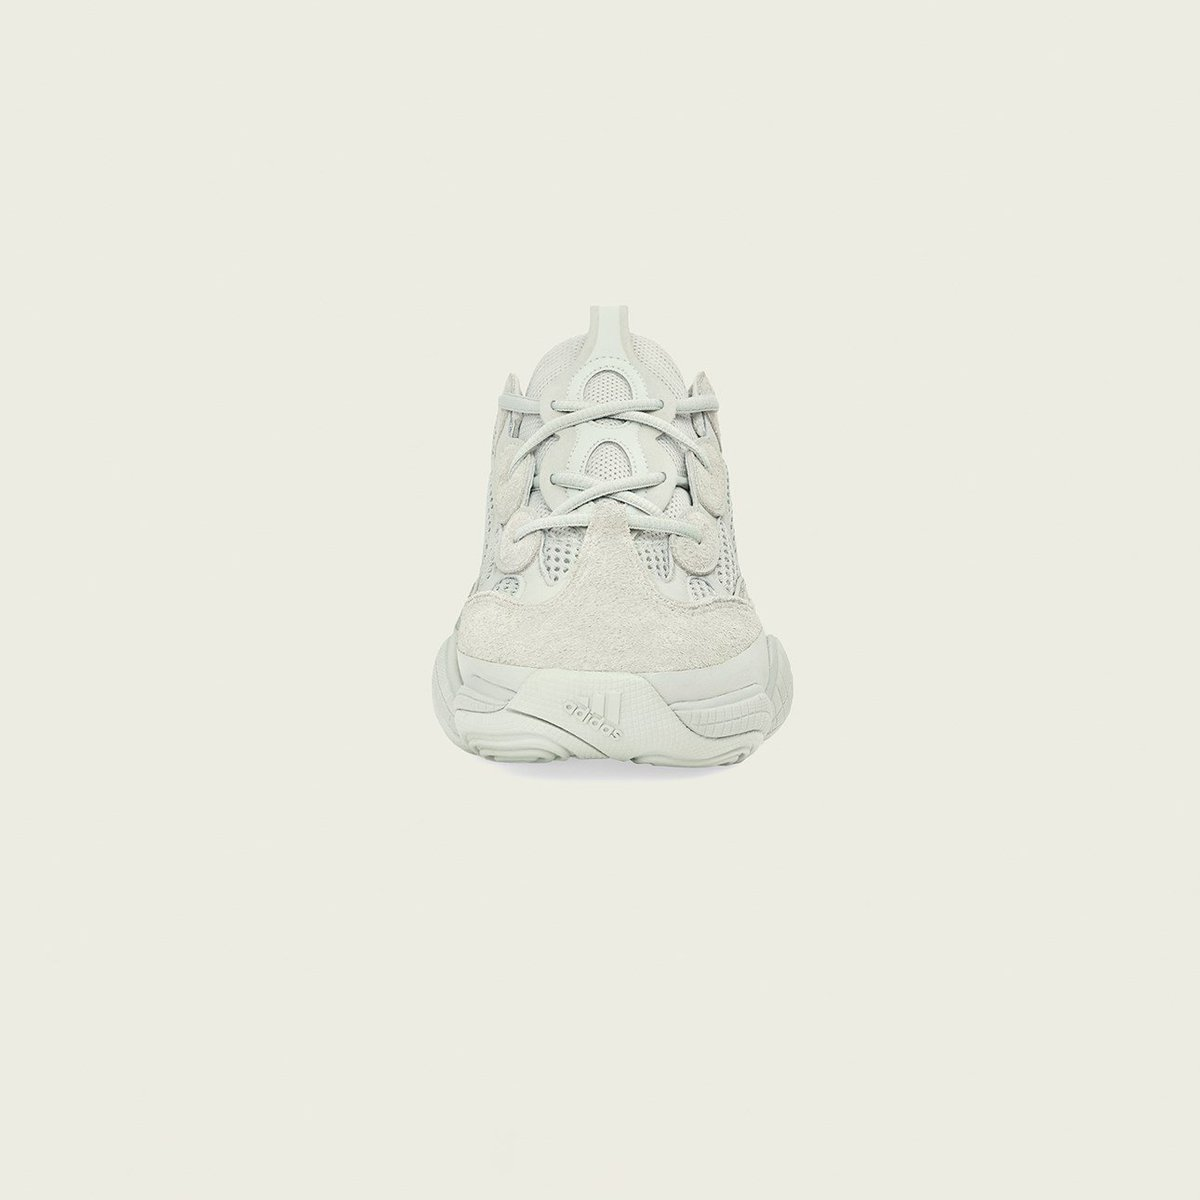 48ae1e8bf Registration closes on Nov 29th at 10.00 (CET). In-store pick up date is  Nov 30. Raffle page  https   bit.ly 2zk1Ggi  YEEZY500pic .twitter.com jhwhXnQaZg